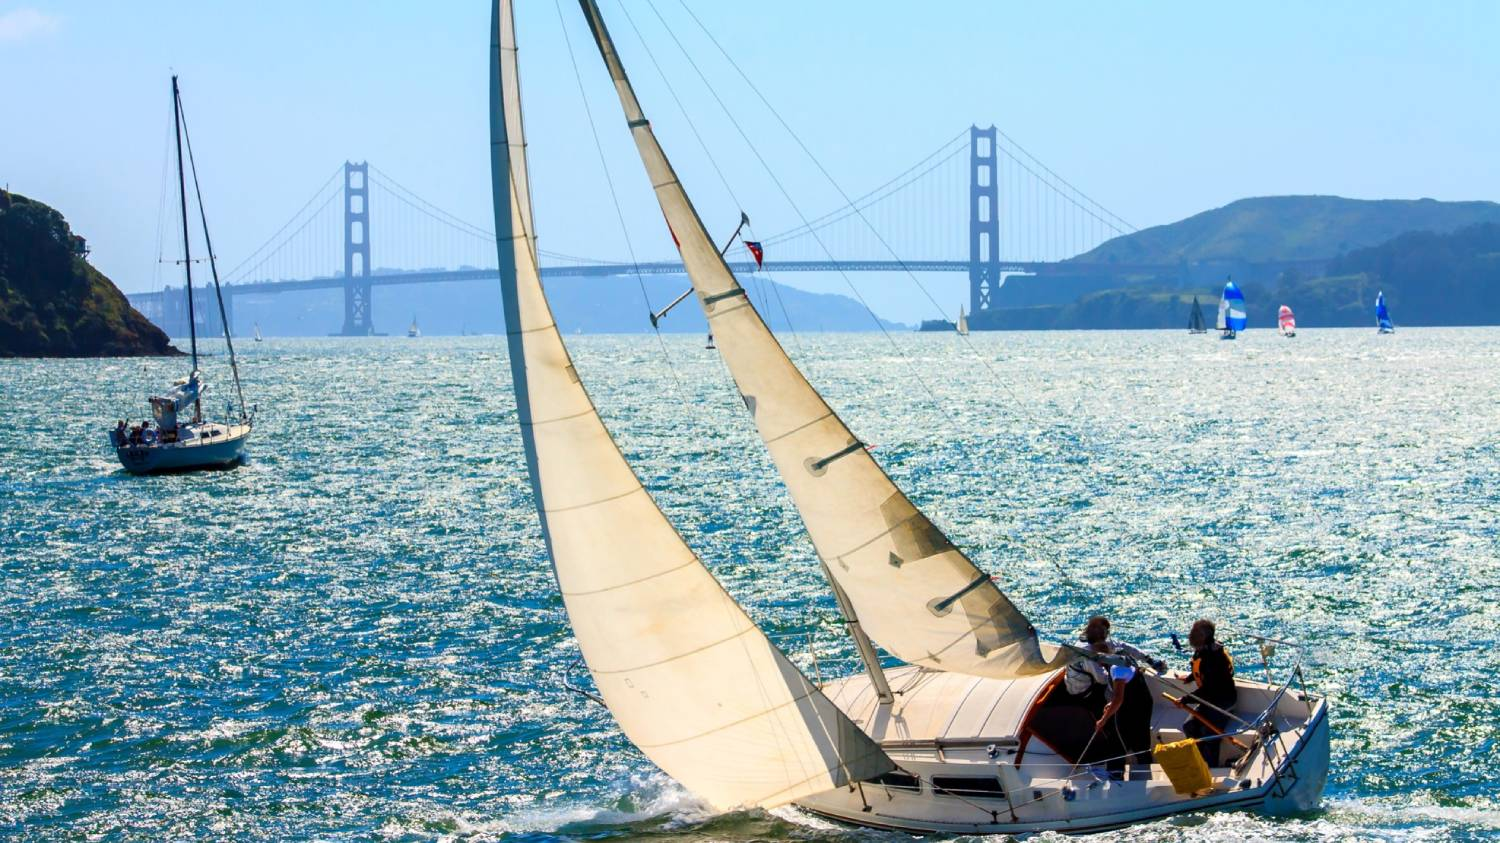 The San Francisco Bay - Things To Do In San Francisco